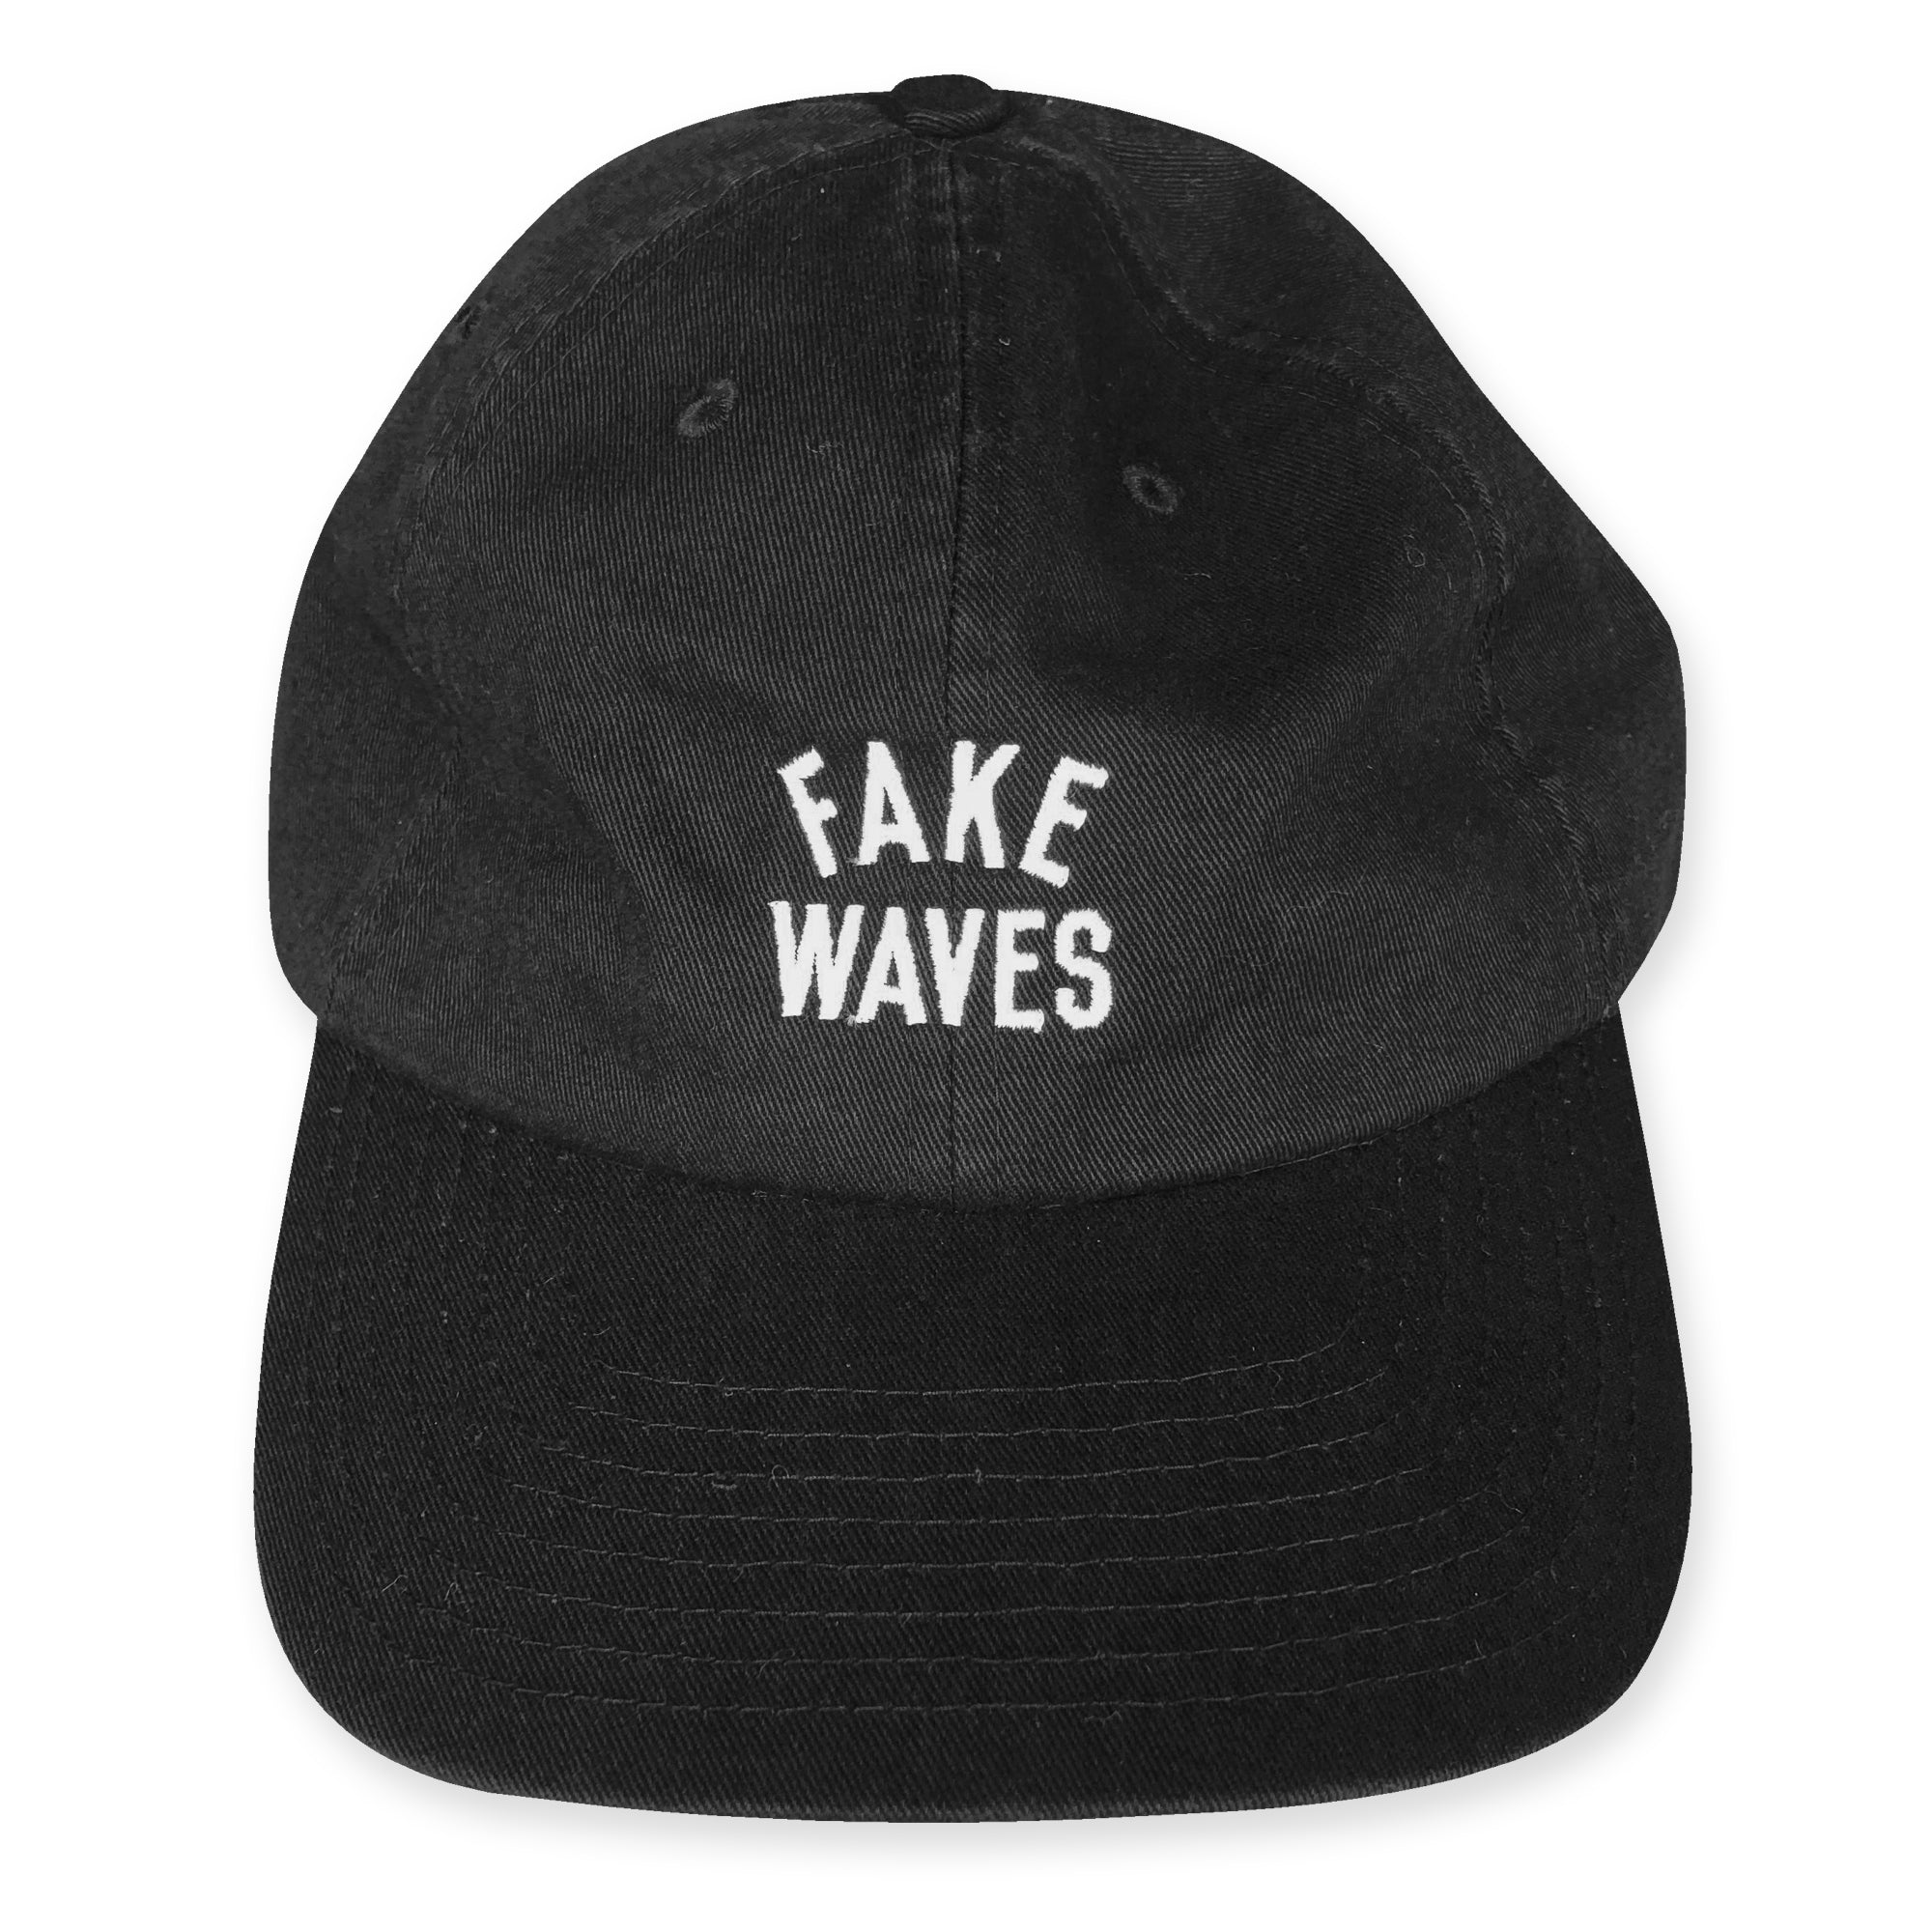 Aloha Beach Club - Fake Waves Cap Black - Aloha Beach Club